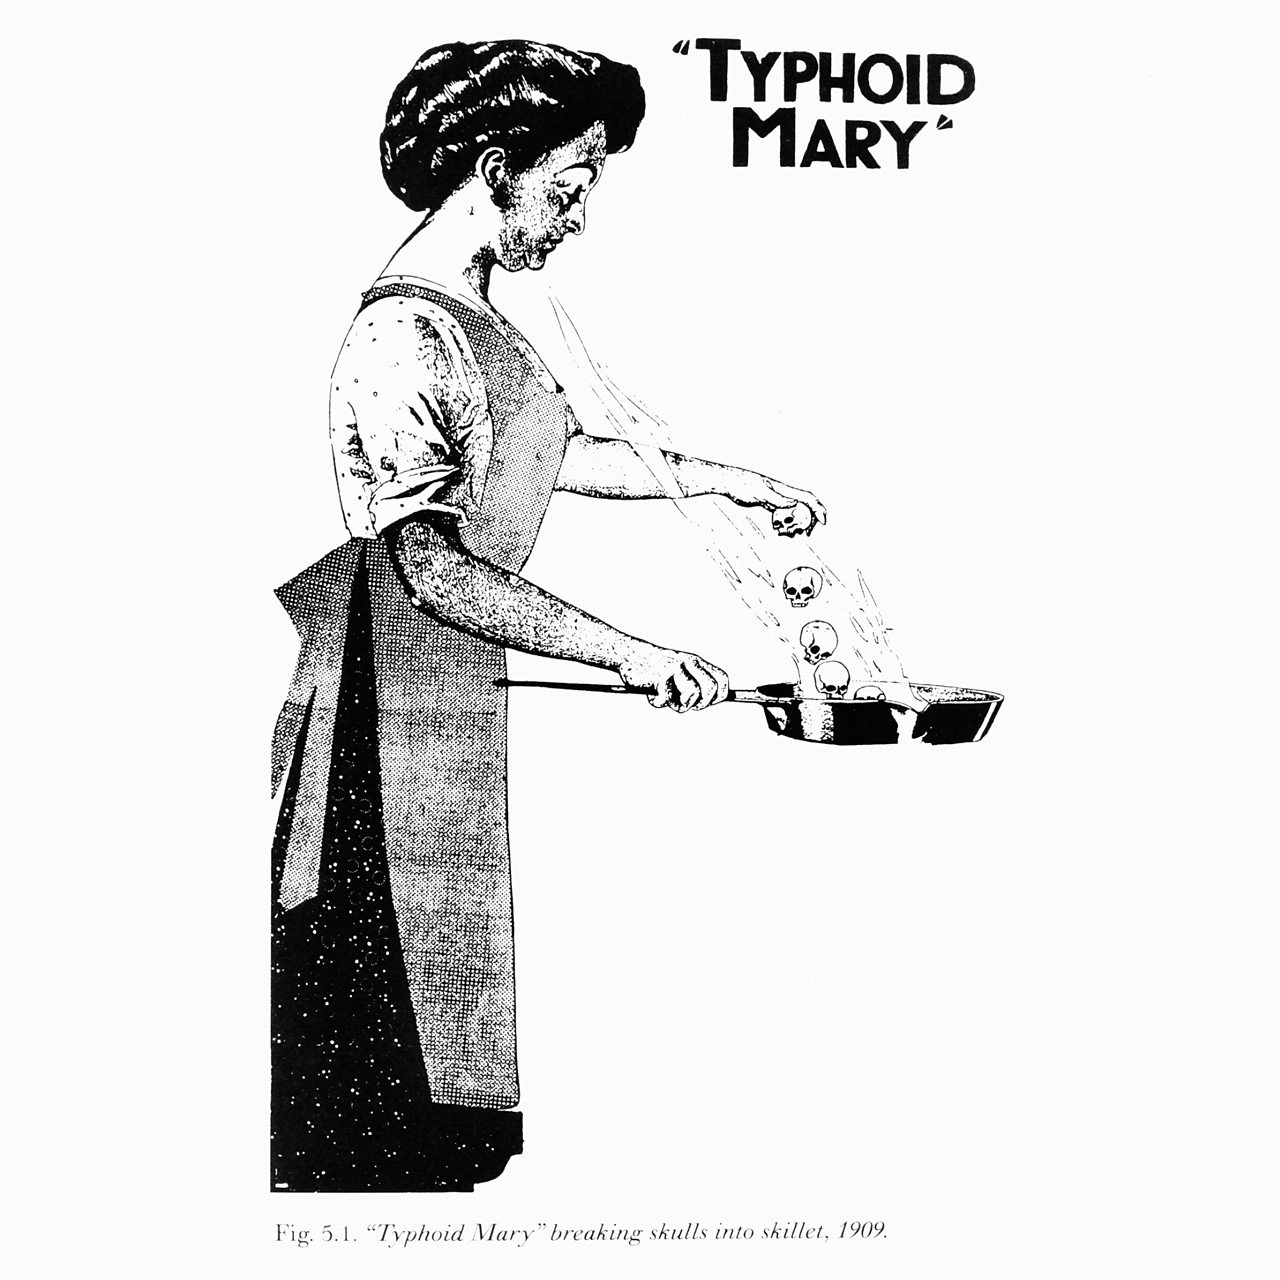 Illustration of Typhoid Mary Mallon from a newspaper in the 1900s